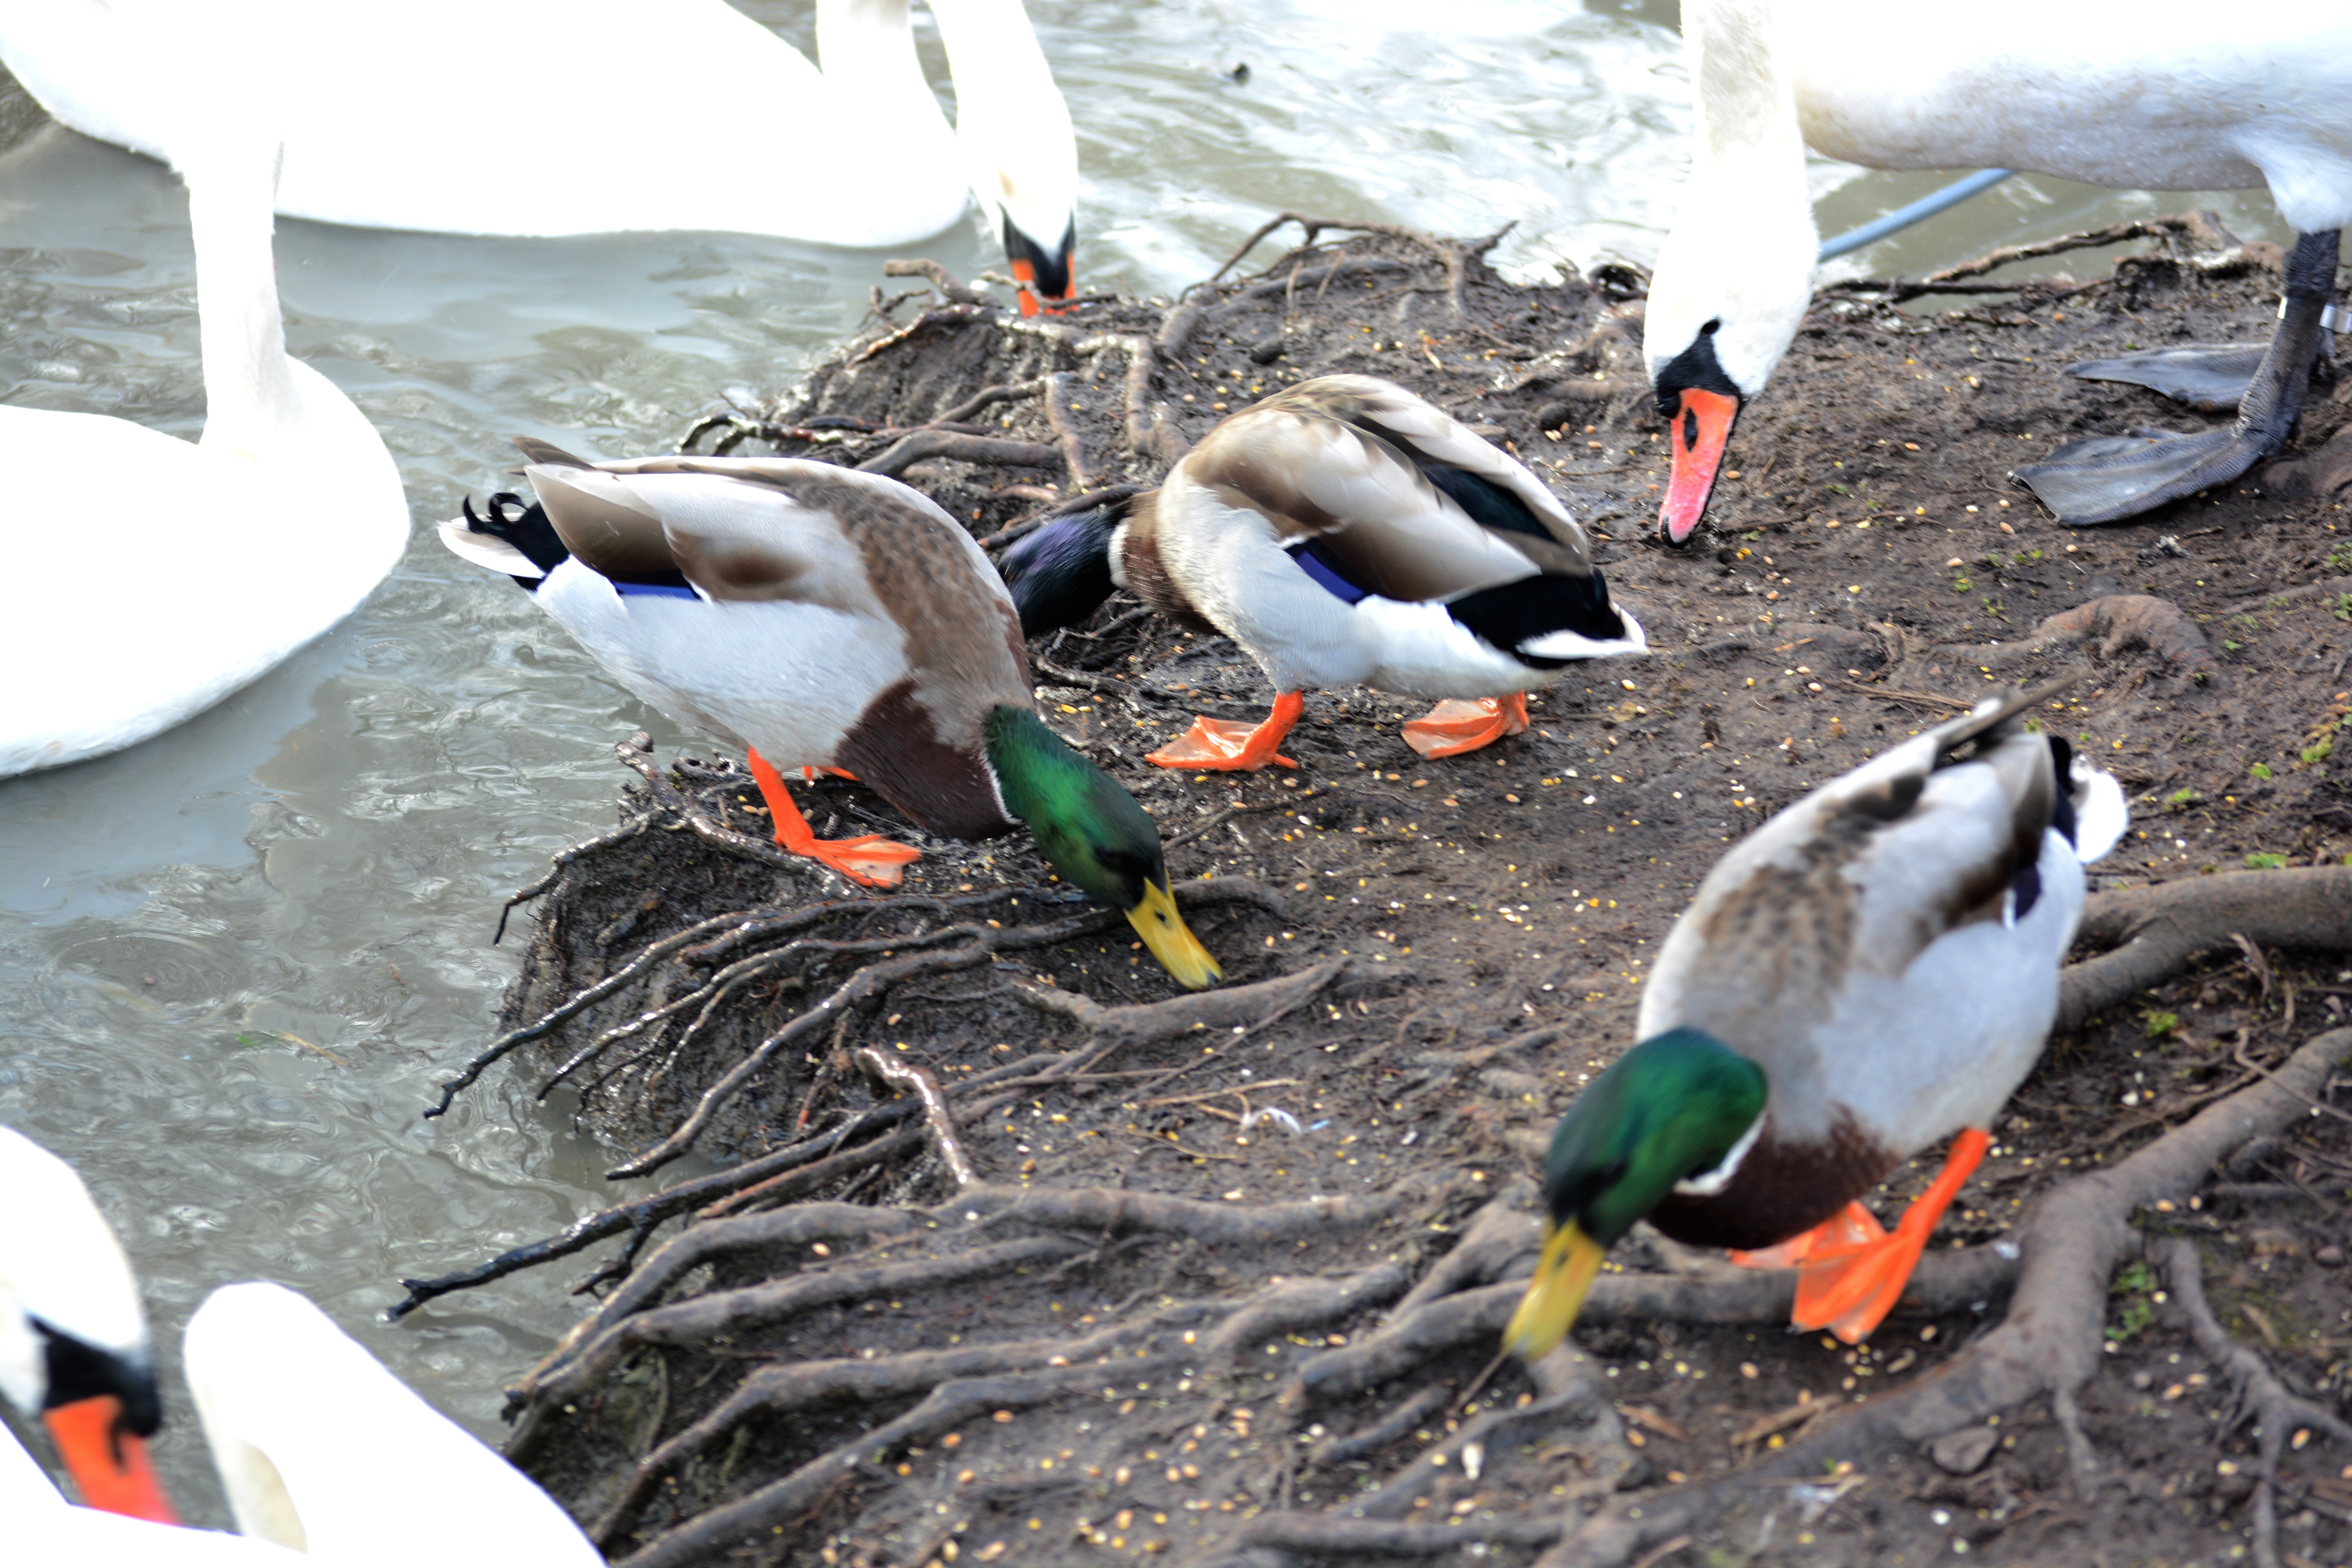 SWANS AND WILDFOWL AT COSMESTON LAKES, 3 EYED RAVEN ULTIMATE GUIDE TO BARRY